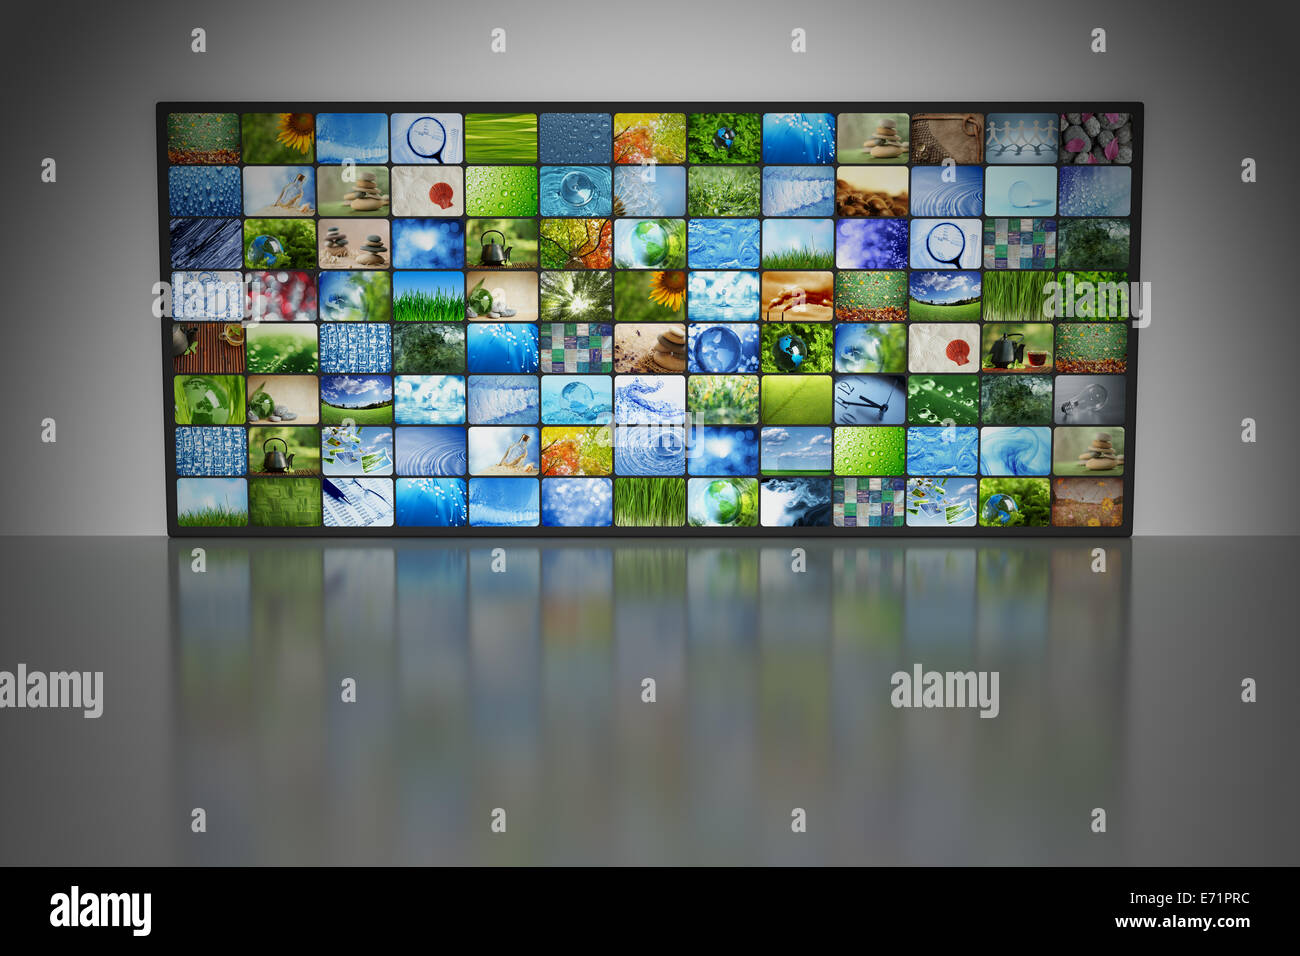 Collections of images - Stock Image